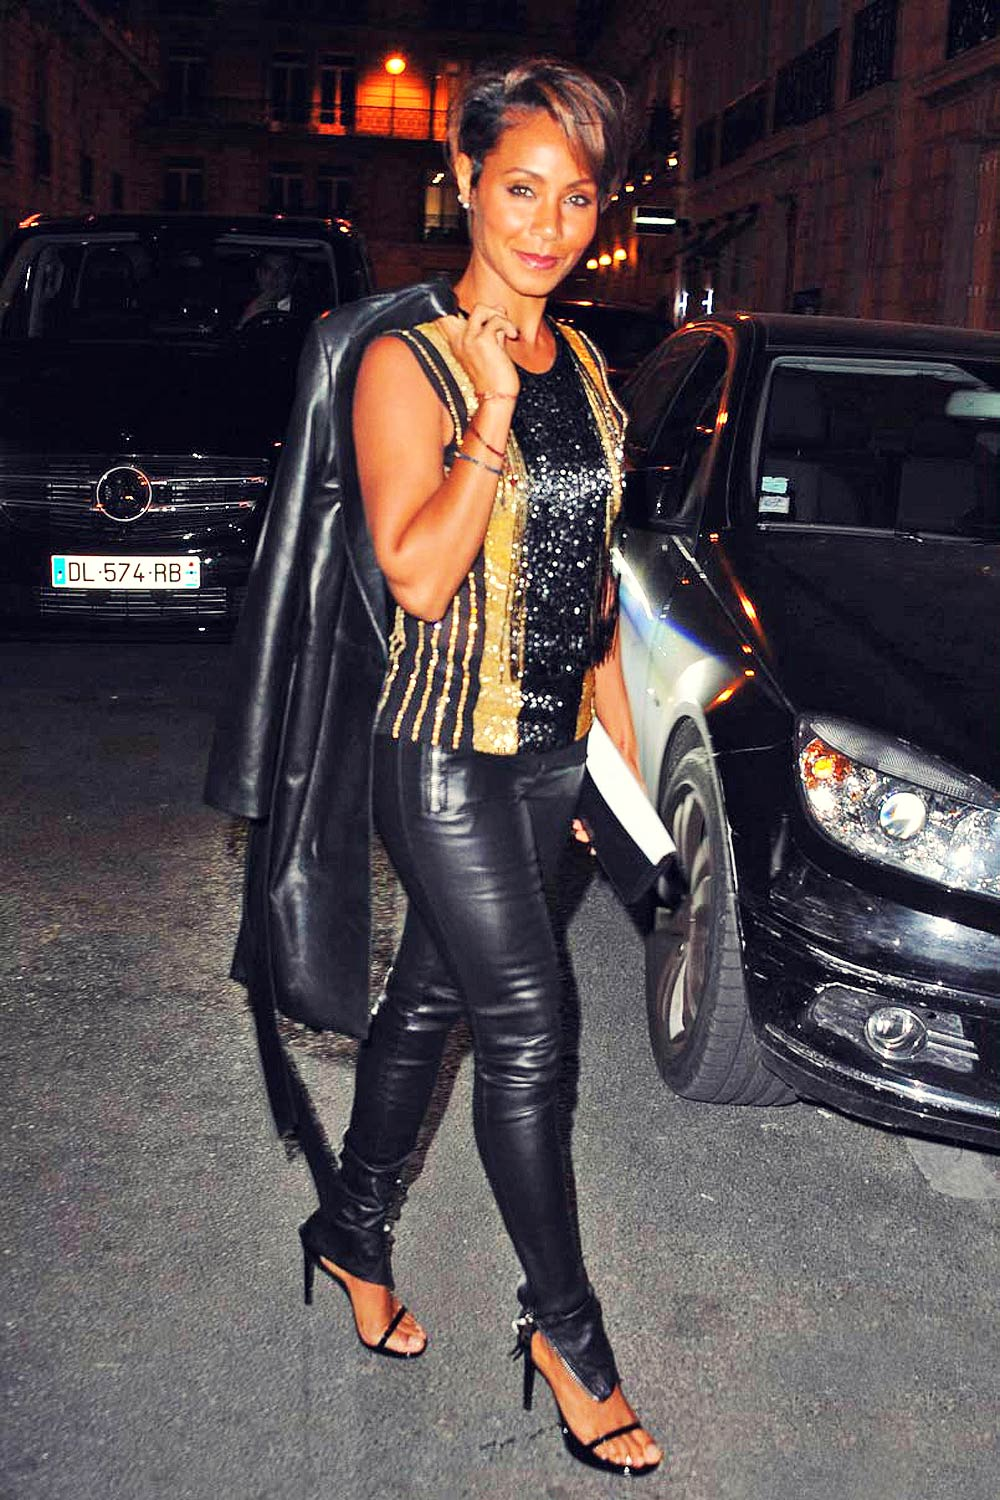 Jada Pinkett Smith dinner at Italiano La Stresa restaurant in Paris